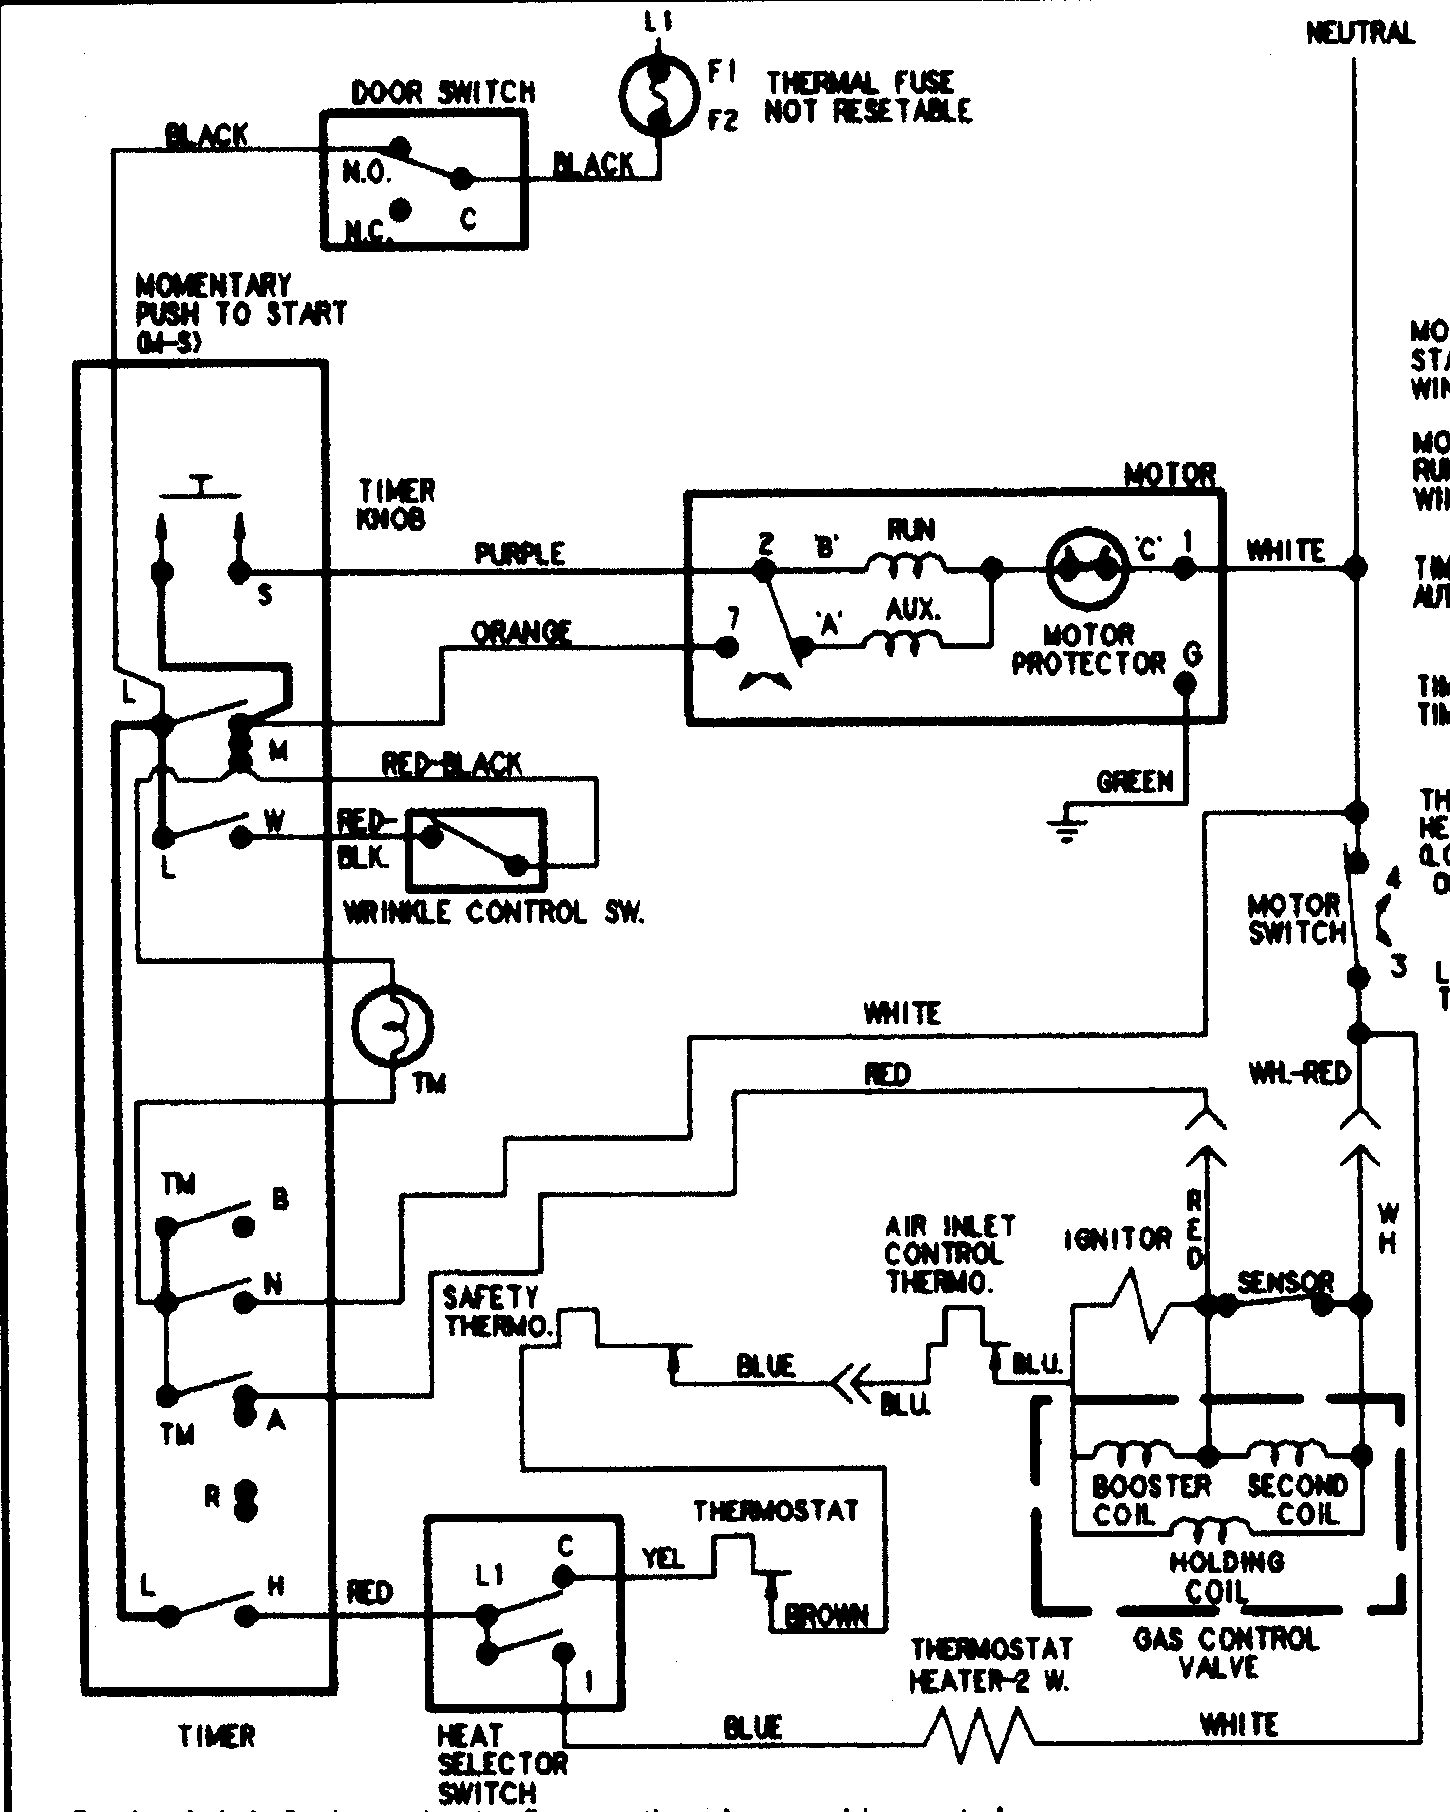 M0310553 00007?resize\\\\\\\=665%2C831 radionics 7212 panel wiring diagram control conventional fire bt bell 80d wiring diagram at gsmportal.co